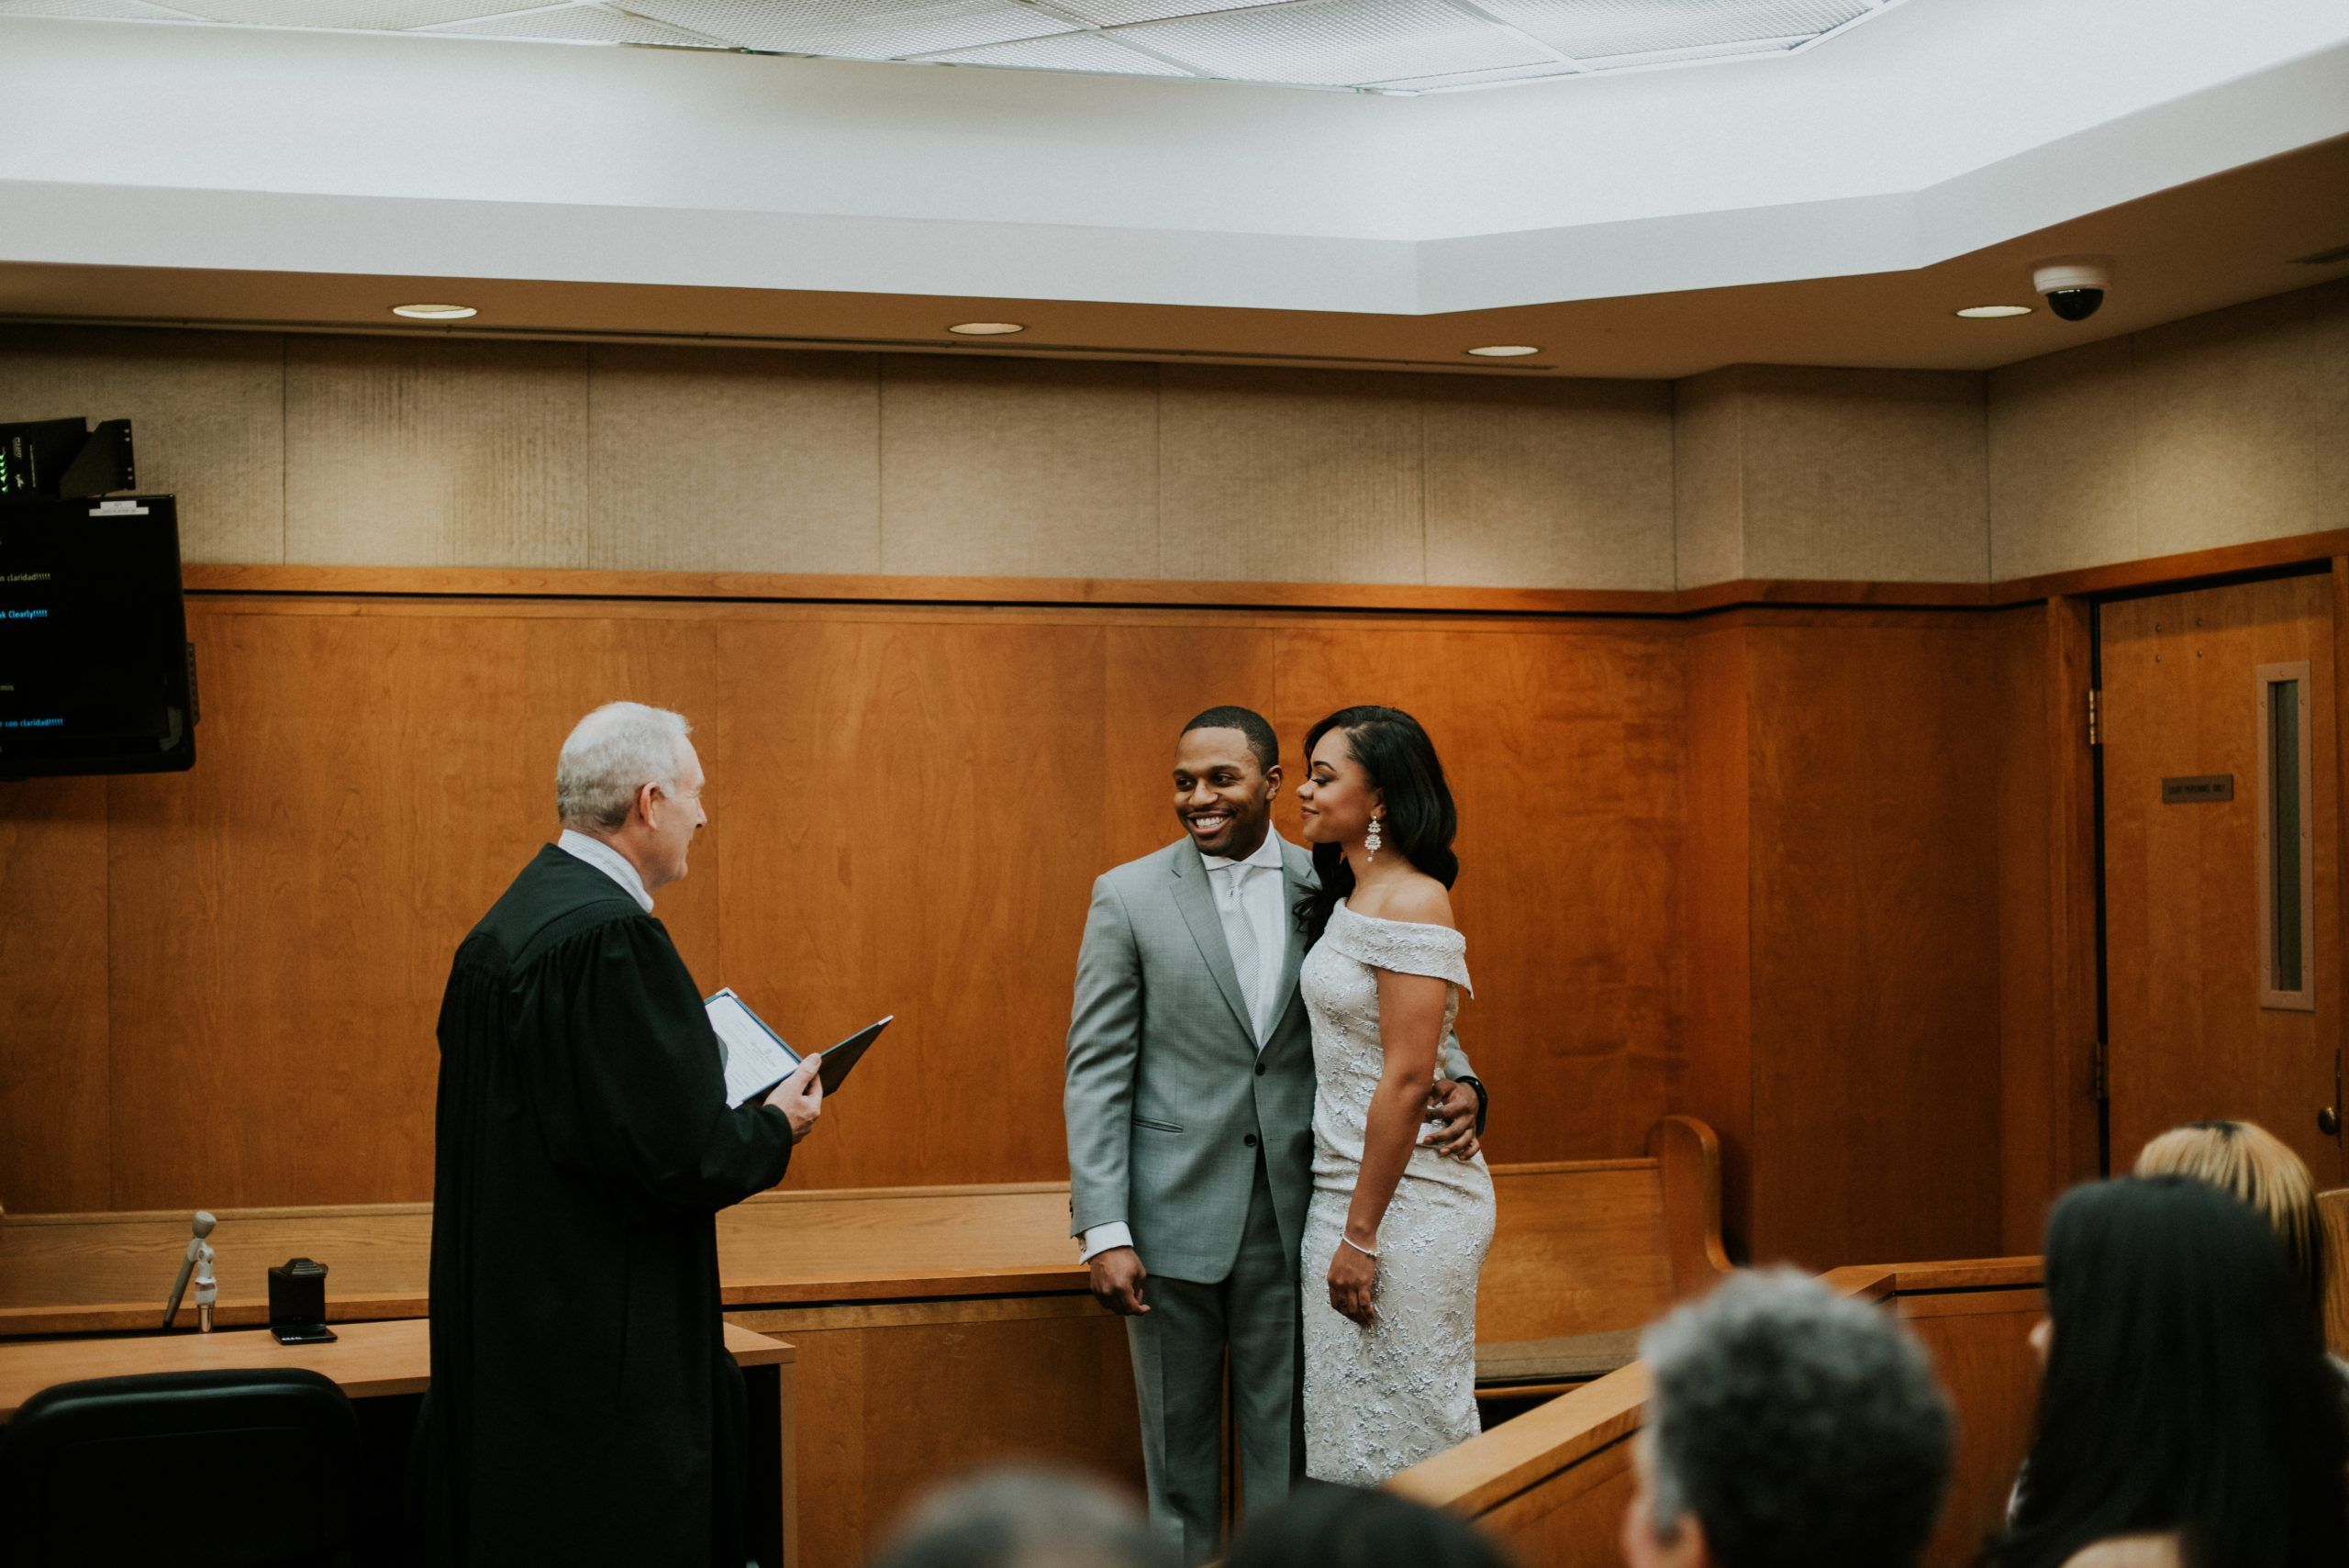 774b6a9bd41ac67f0d33ba8e74ba1b7f - How To Get Married In Michigan In A Courthouse